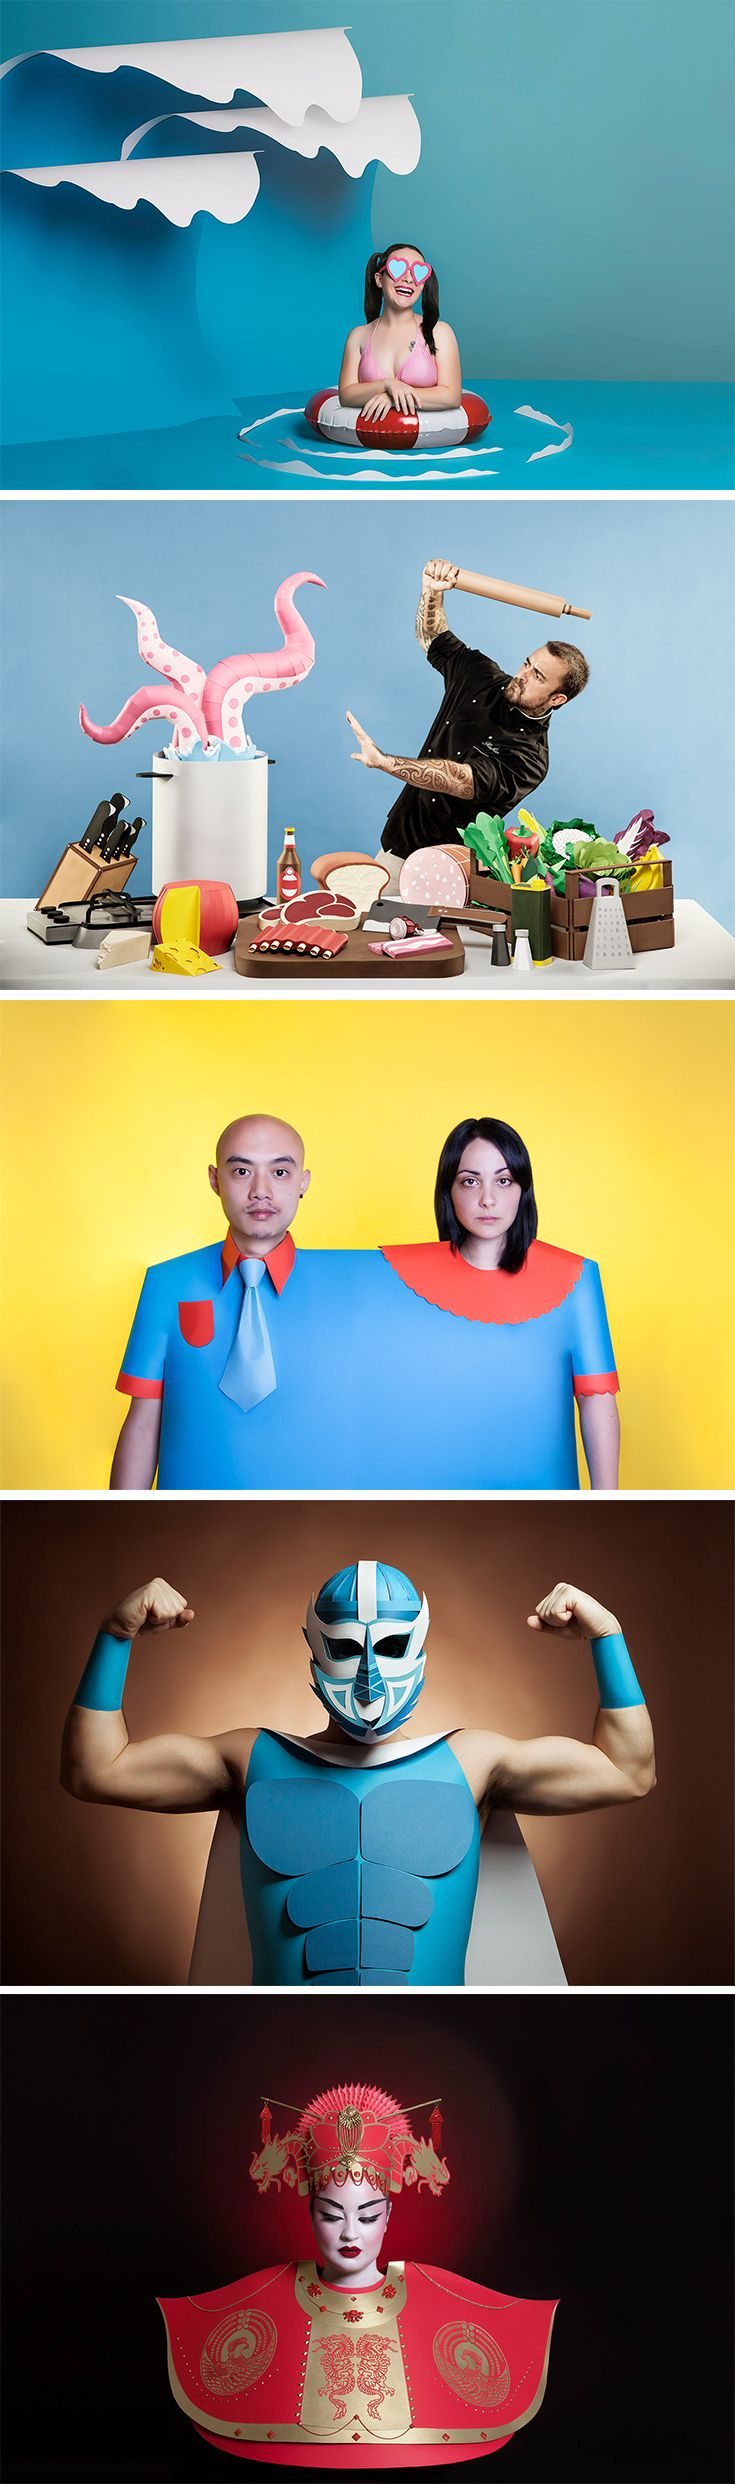 Click for more pics! | Quirky Paper Portraits by Set Designer Adriana Napolitano #paperart